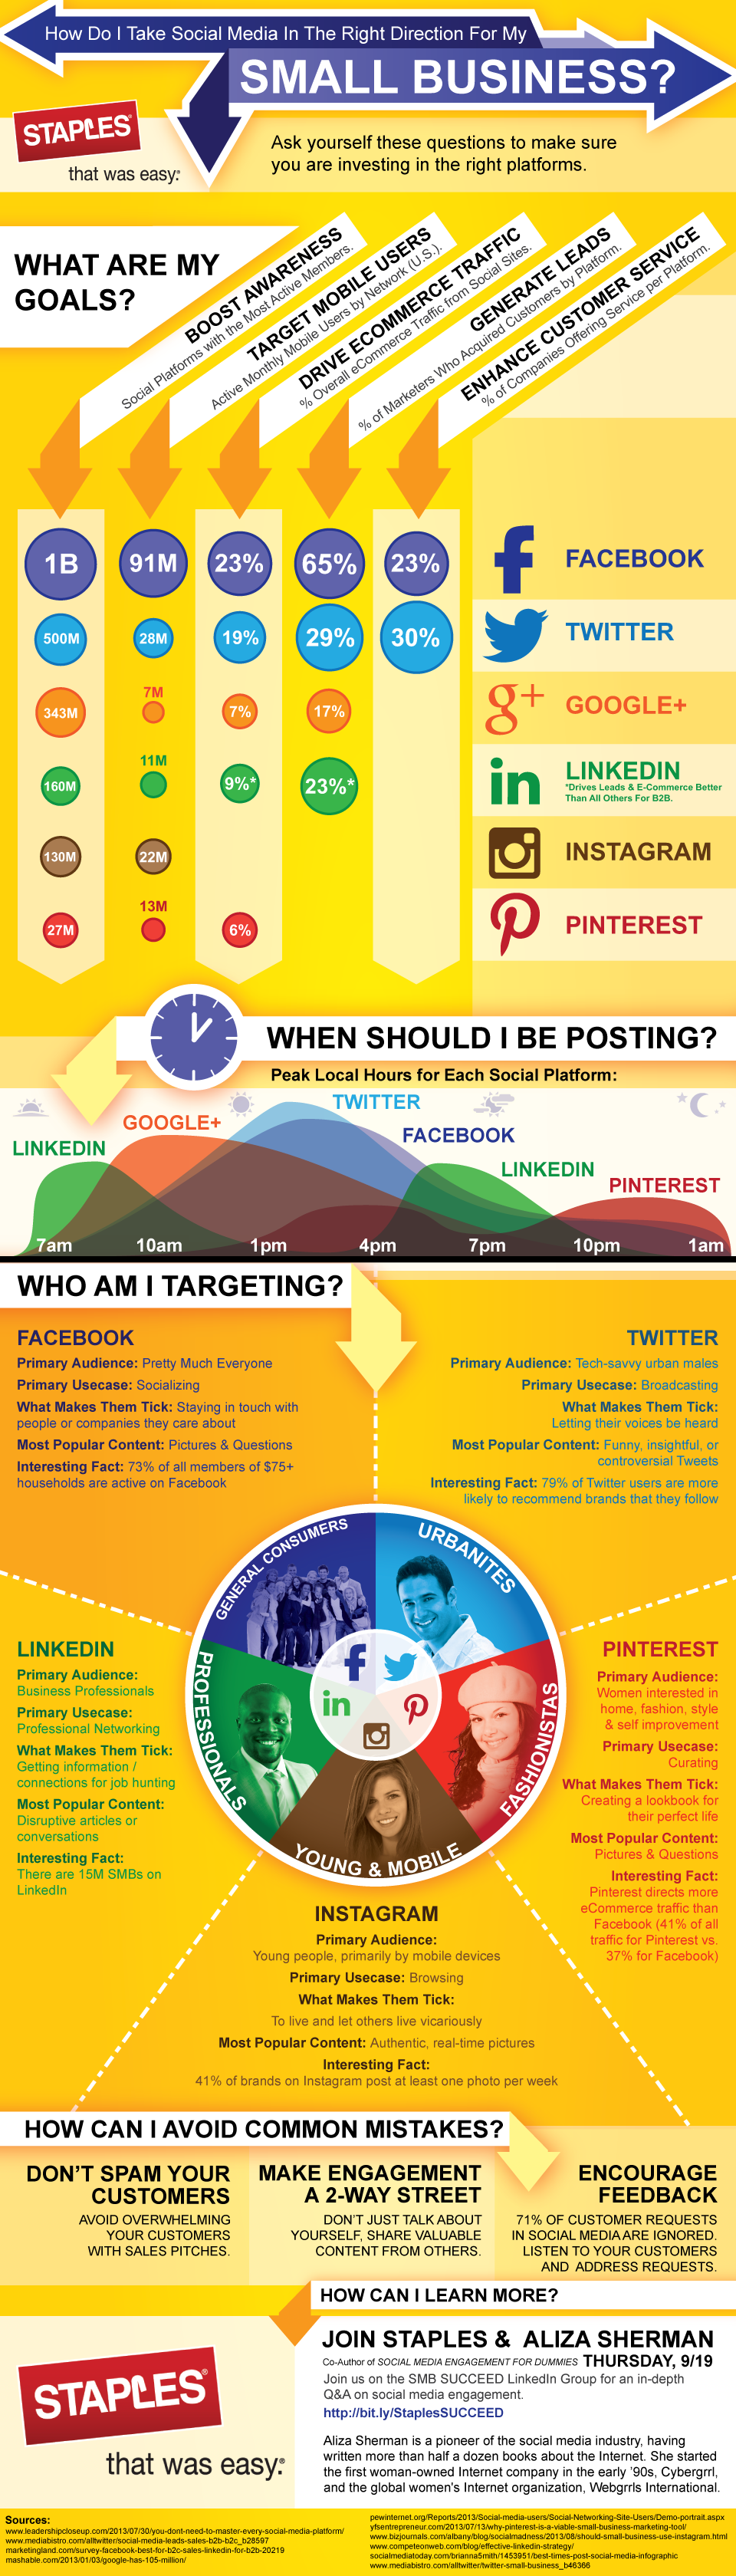 Staples Social Media Infographic